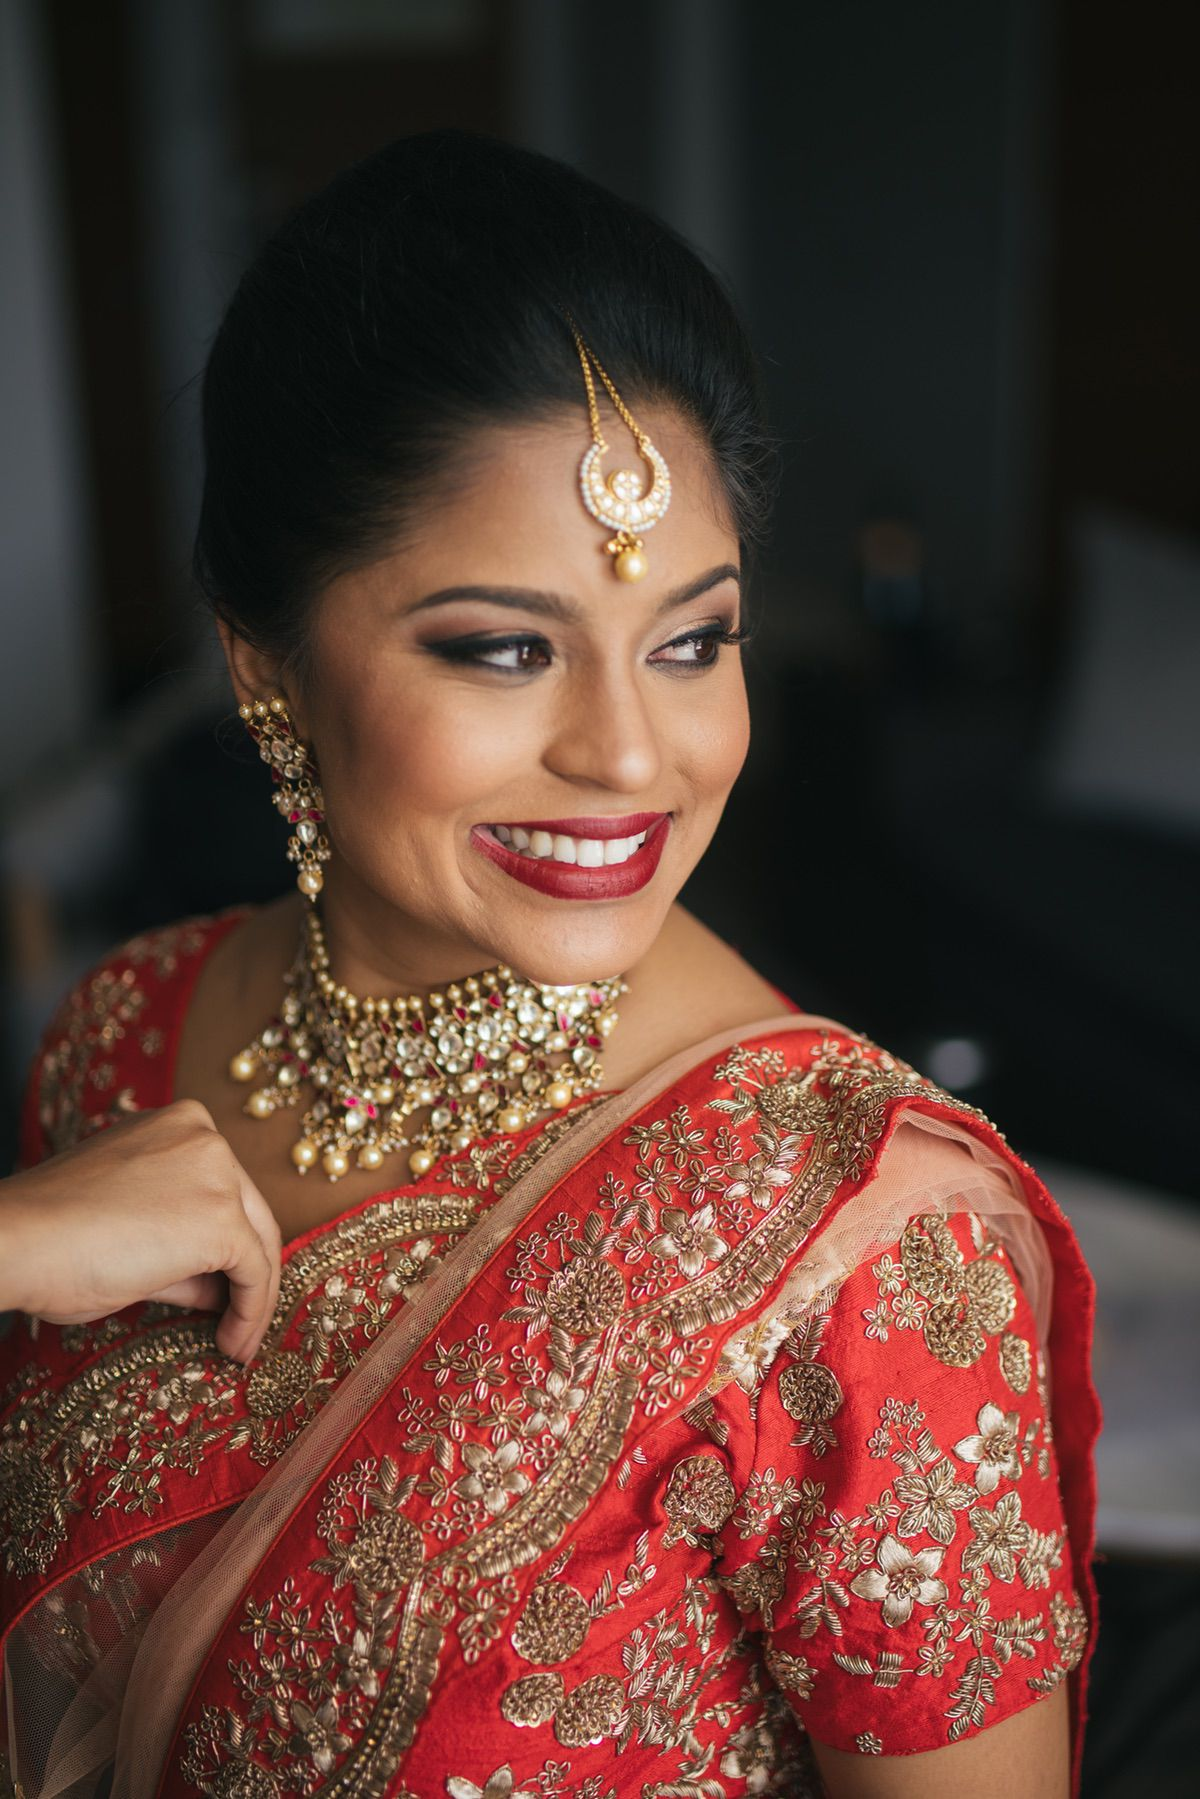 Le Cape Weddings - South Asian Wedding - Trisha and Jordan - Bride Getting Ready AM --19.jpg